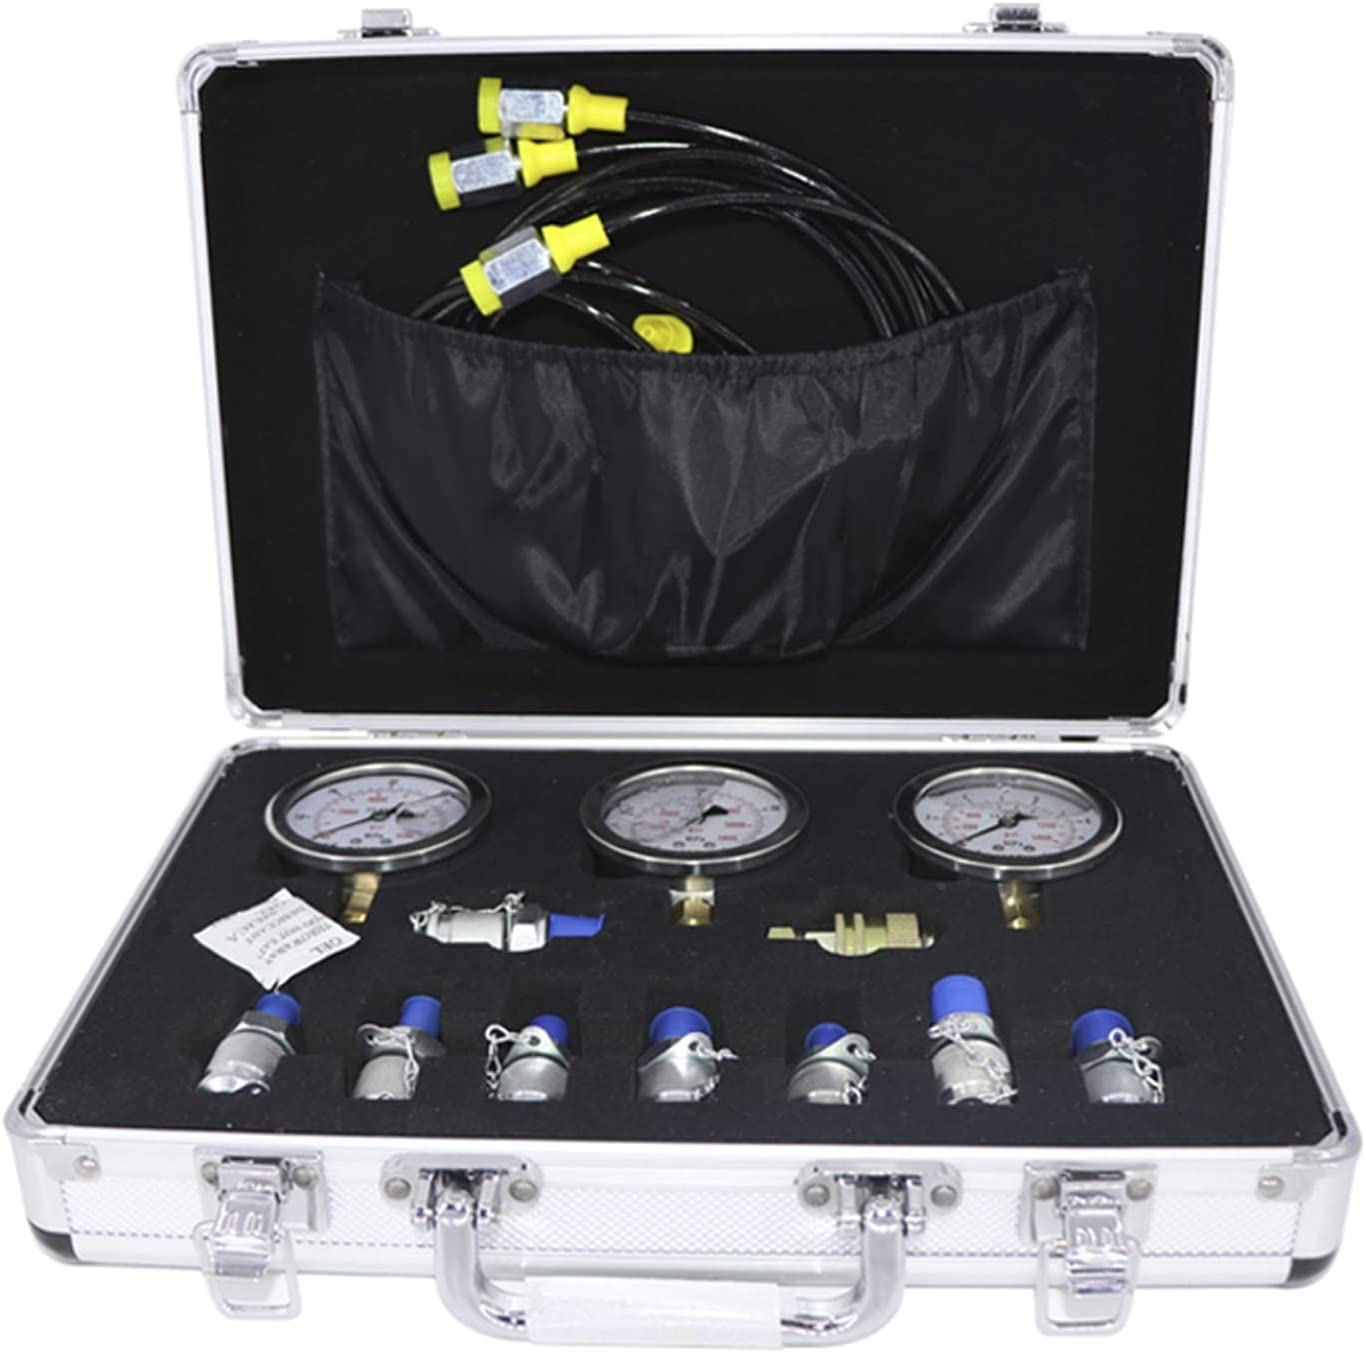 hydraulic tools Sale Special Price Portable Hydraulic Max 76% OFF Test Gauge Box Dig Mechanical